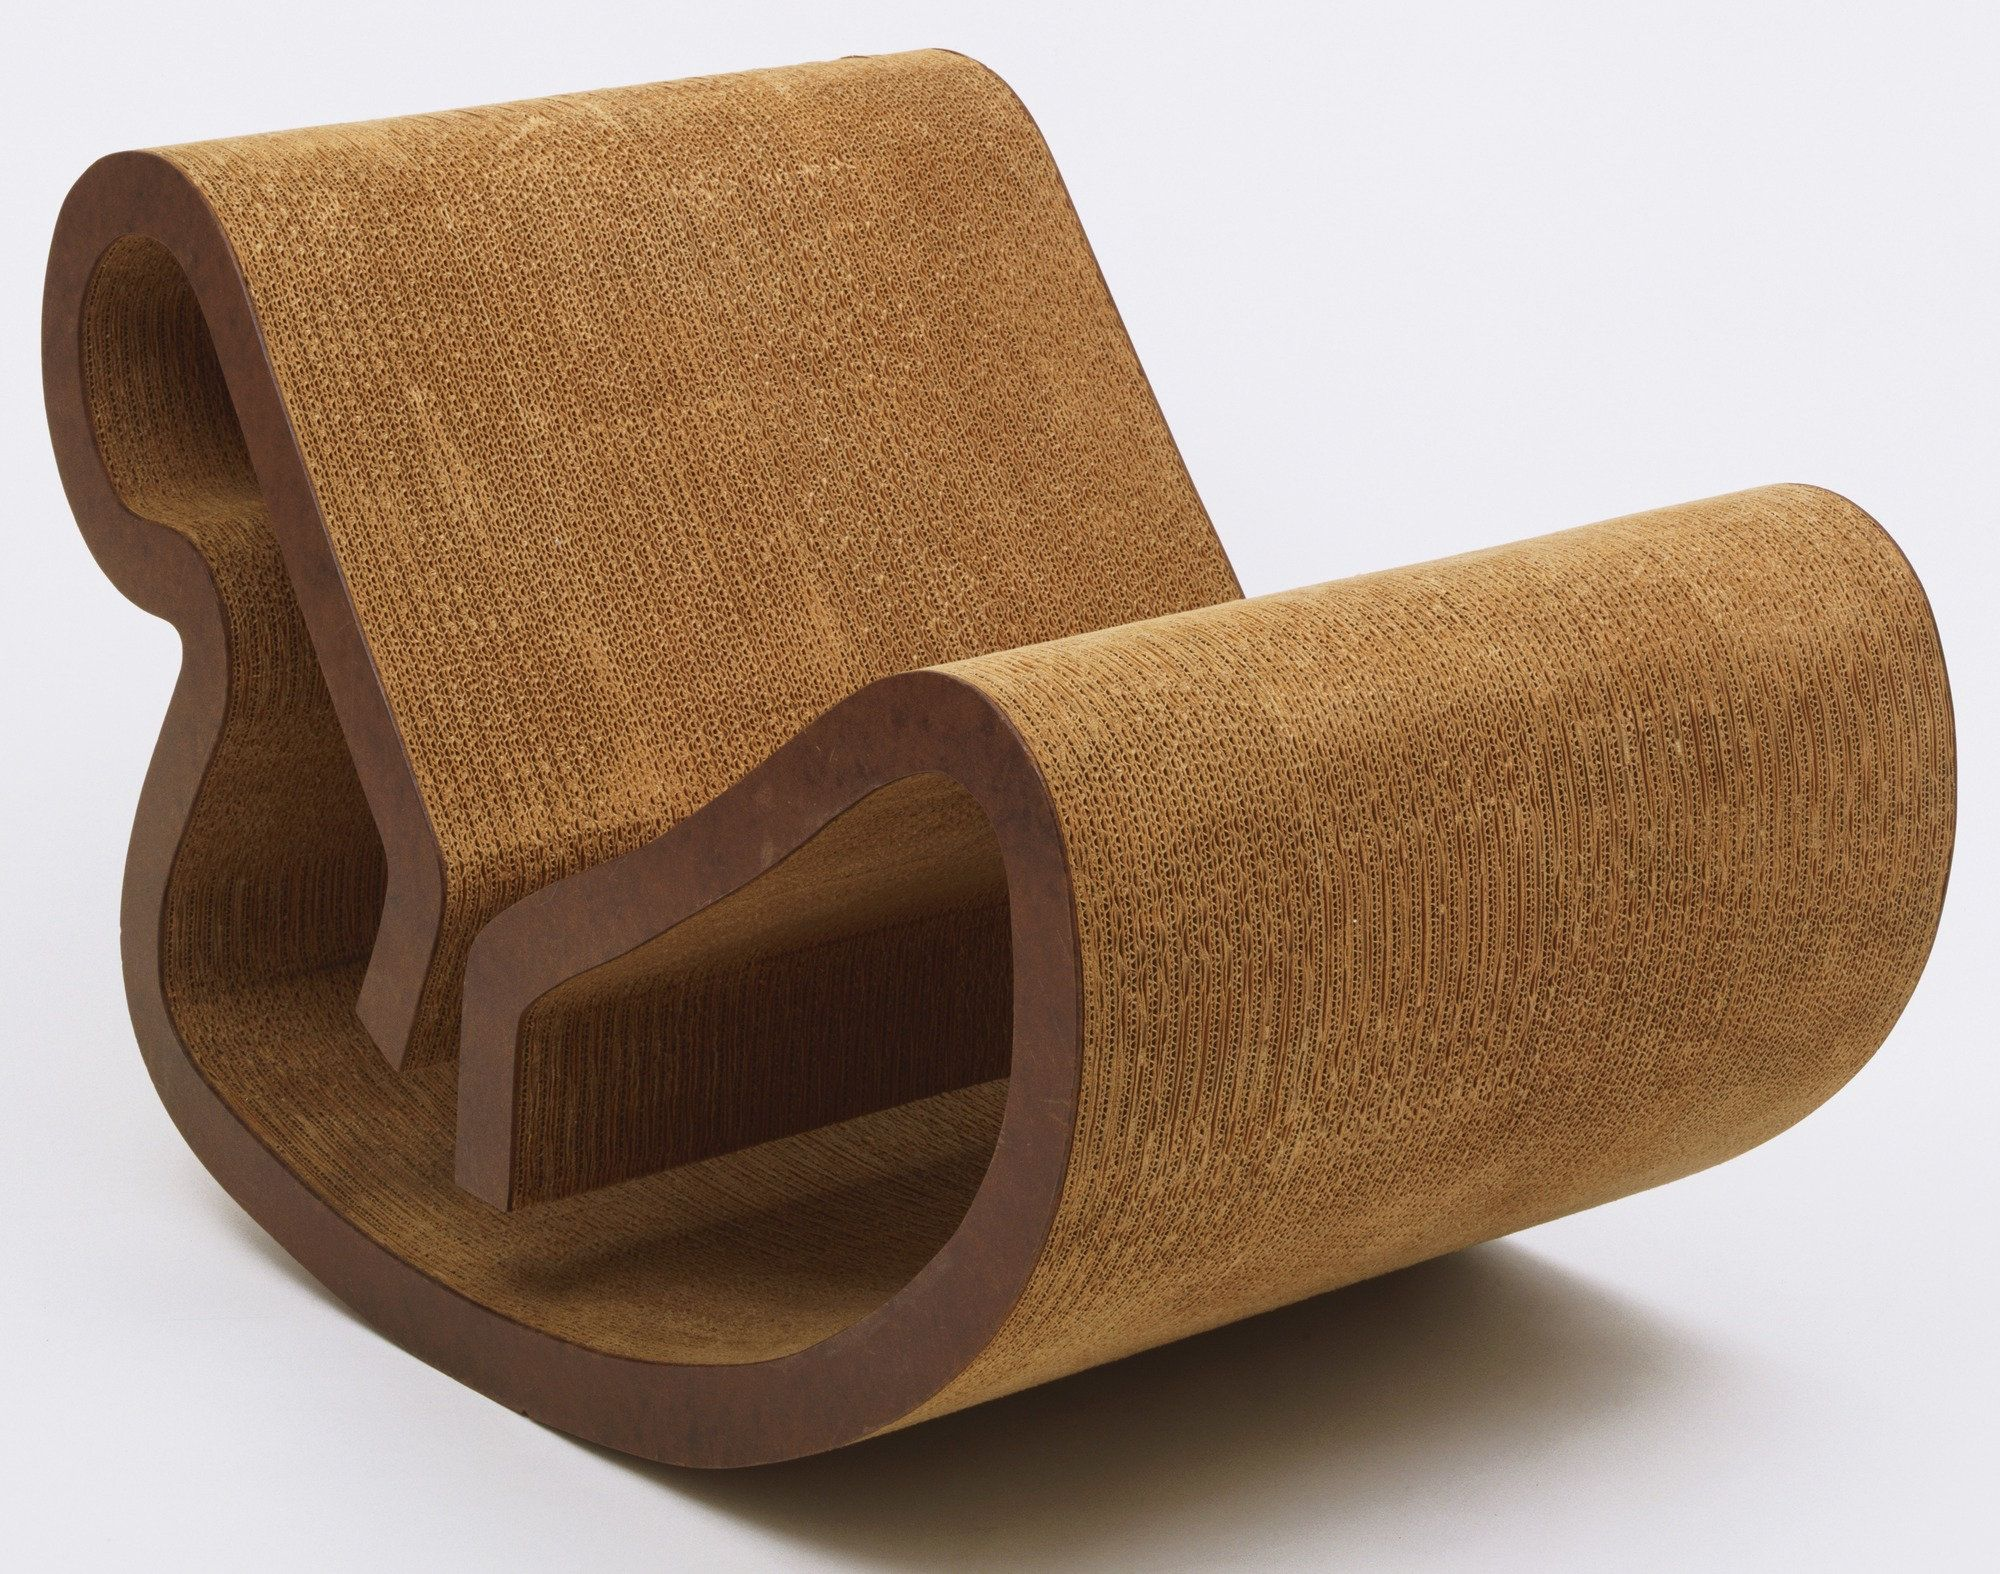 70s chairs is frank o gehry s cardboard chair wiggle side chair - Frank O Gehry Easy Edges Body Contour Rocker 1971